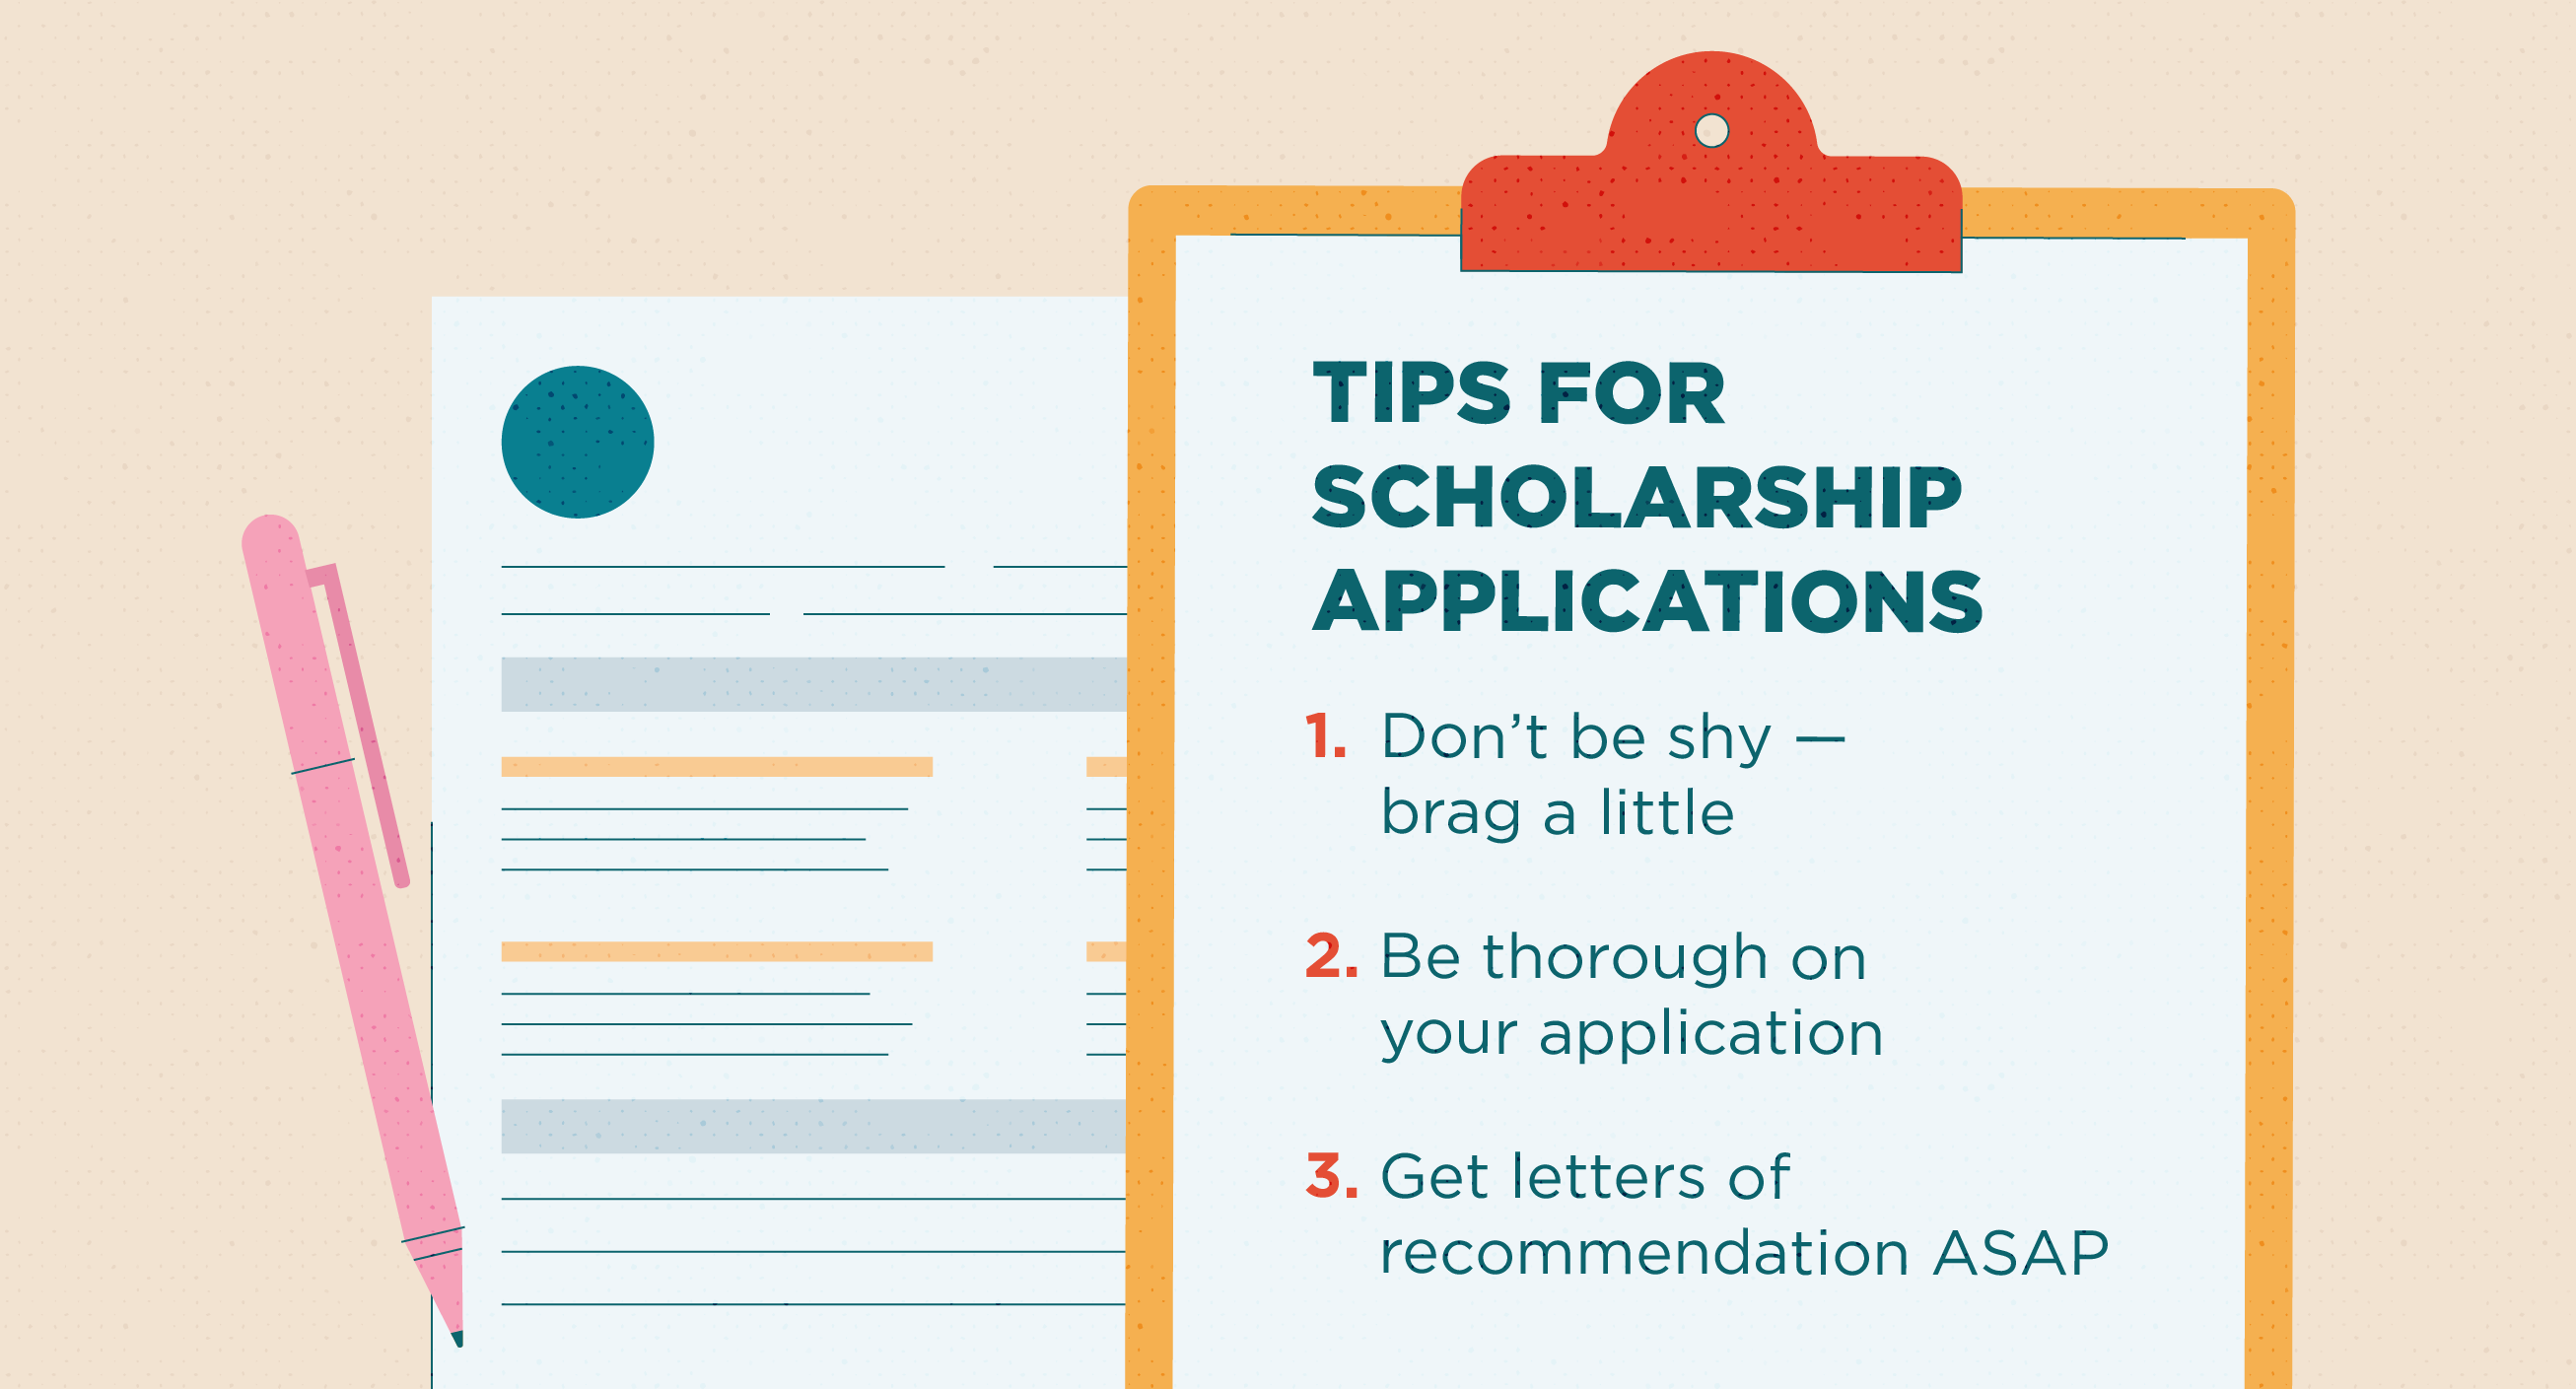 Tips on applying for scholarships for people with disabilities